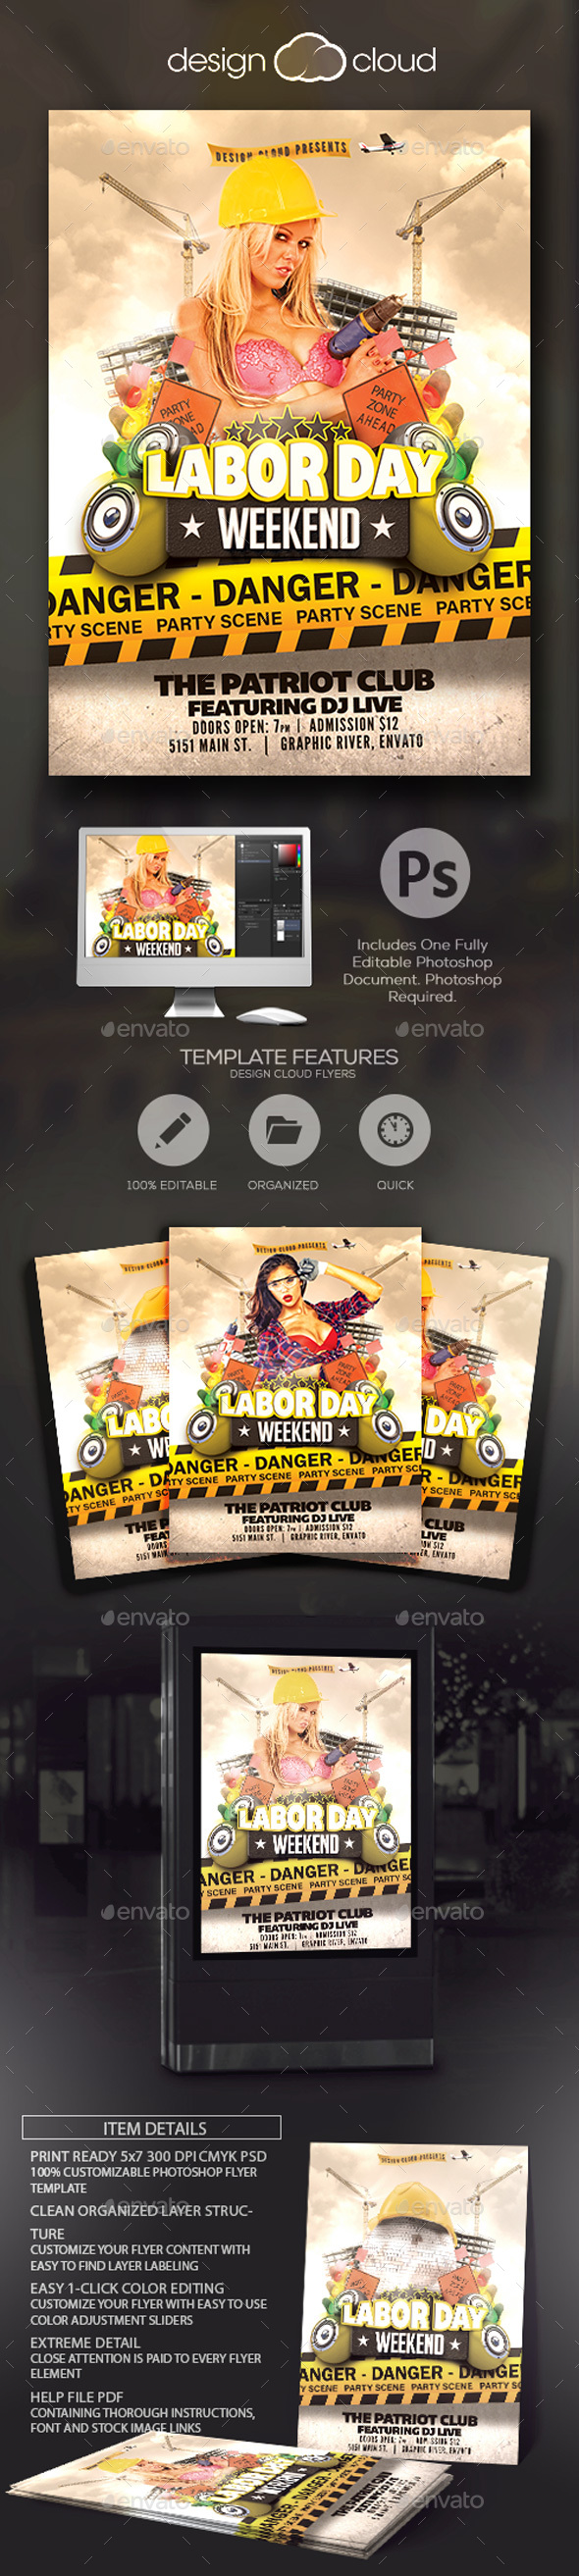 Labor Day Vol 3 Flyer Template - Holidays Events